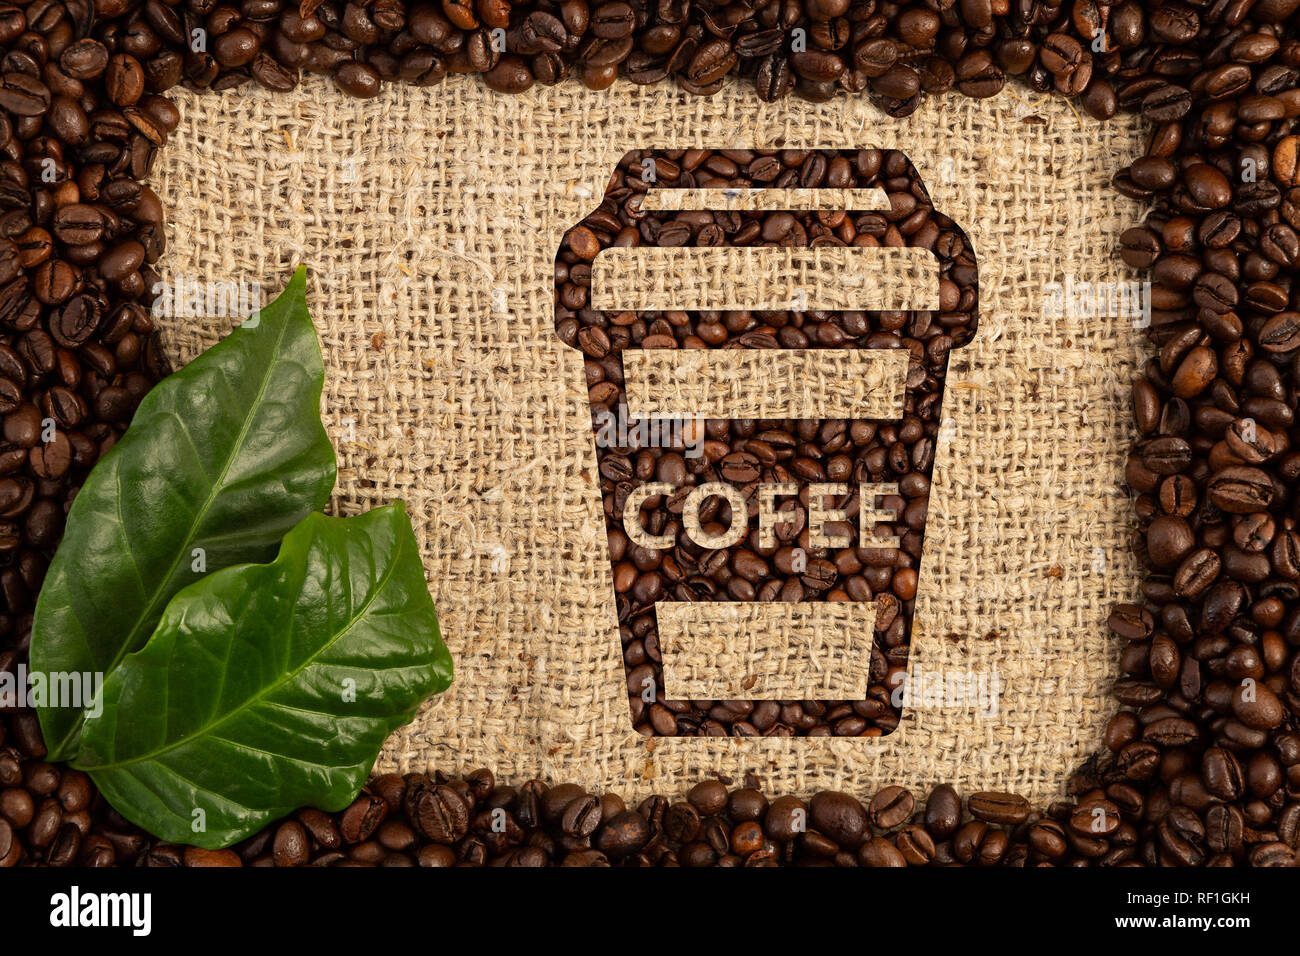 Carton cup for coffee to-go with text written on it on brown burlap bean bag background Stock Photo